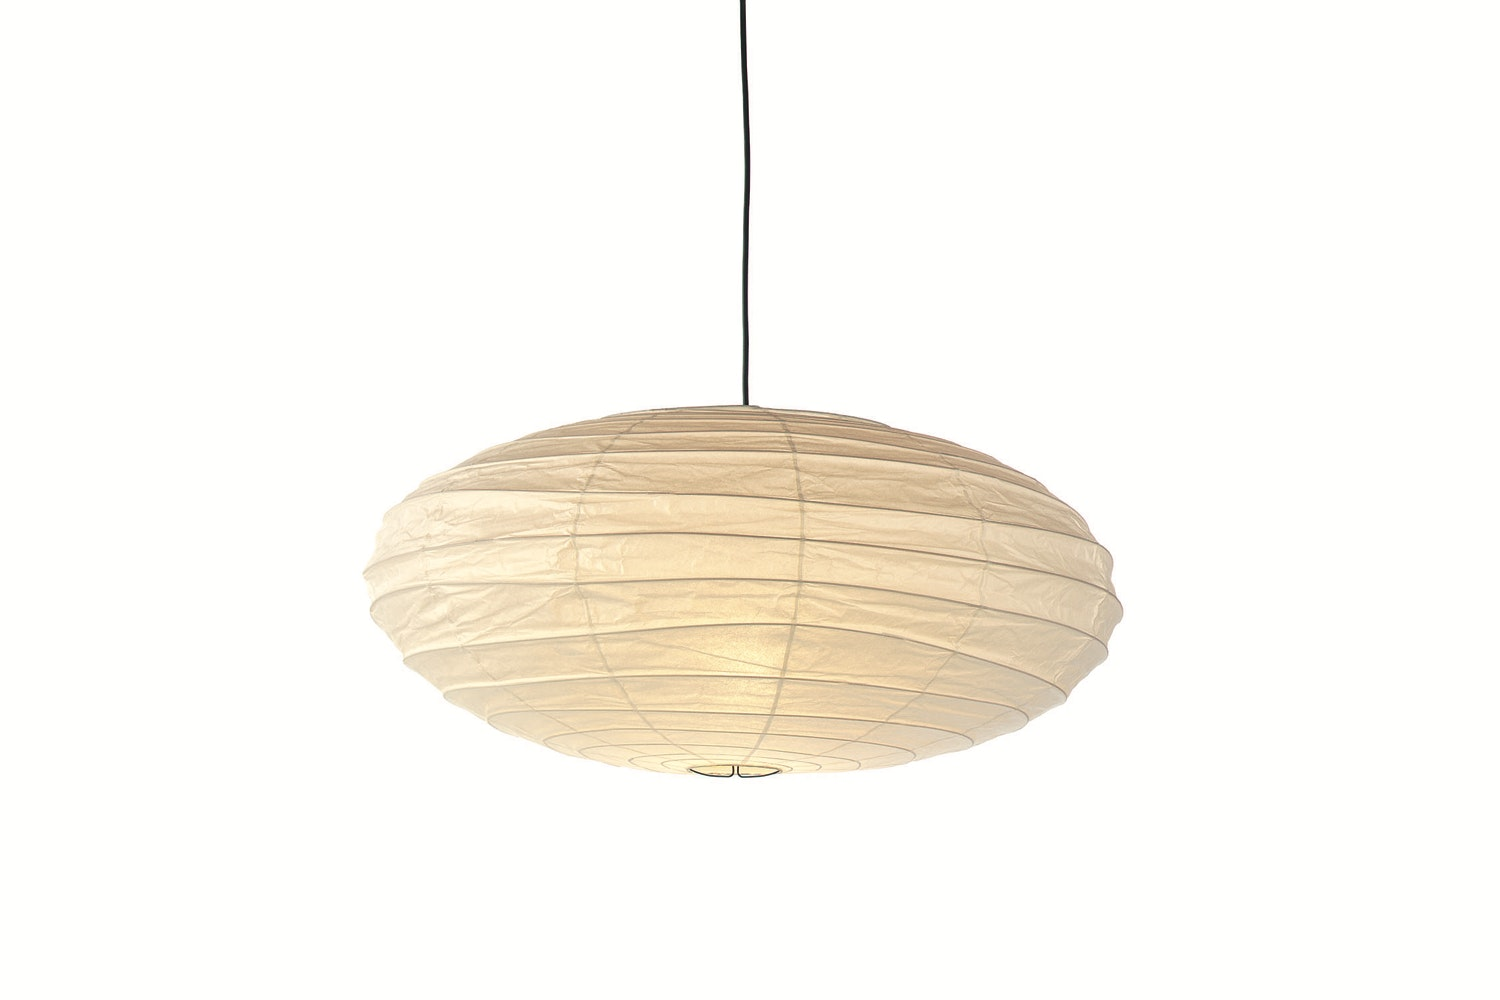 Akari Light Sculptures Suspension Lamp by Isamu Noguchi for Vitra